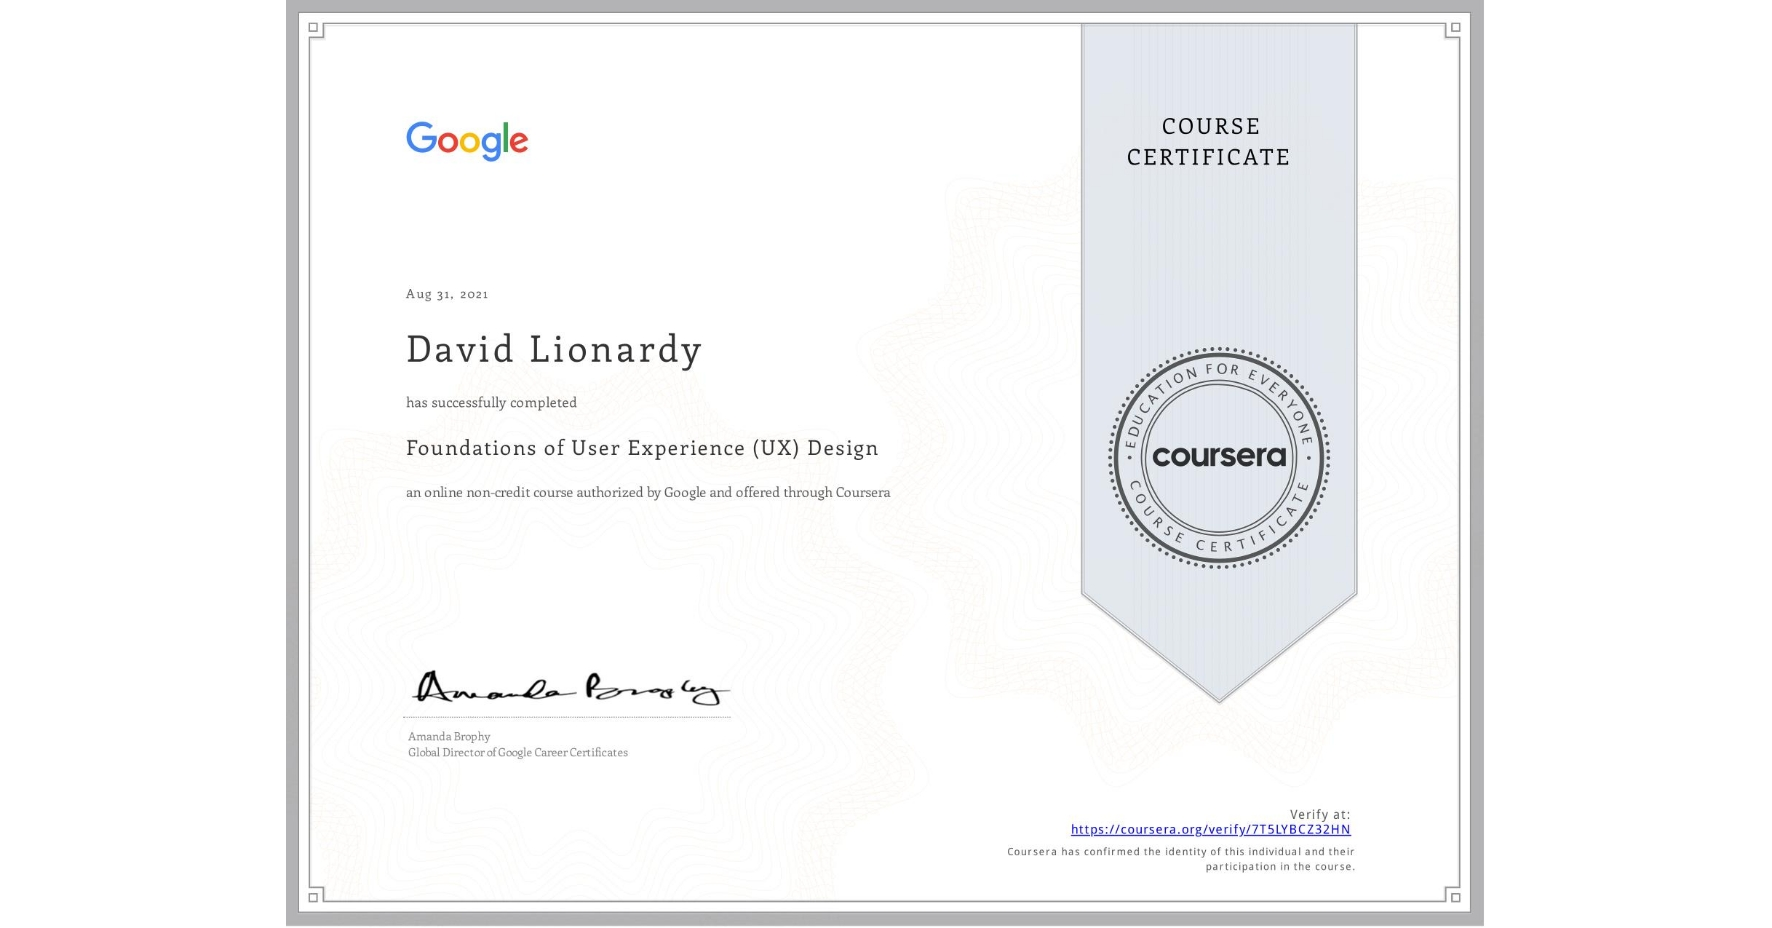 View certificate for David Lionardy, Foundations of User Experience (UX) Design, an online non-credit course authorized by Google and offered through Coursera